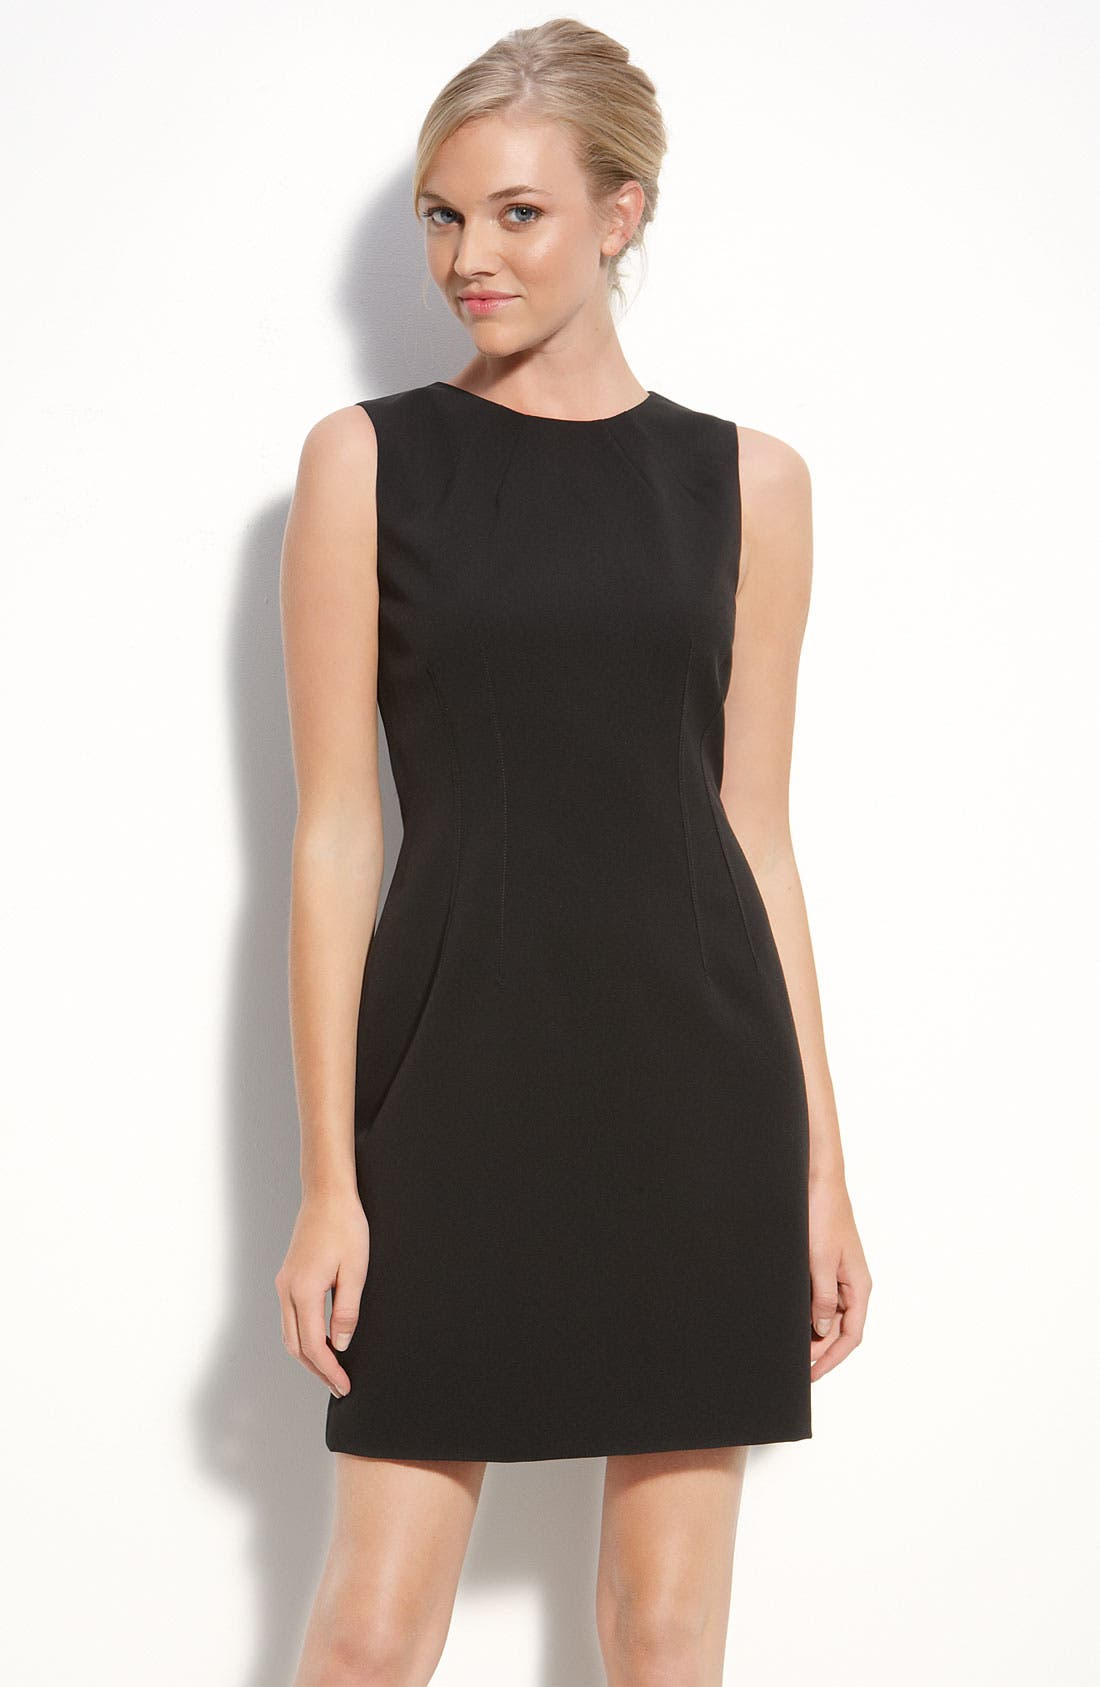 Alternate Image 1 Selected - T Tahari 'Dakota' Sheath Dress (Petite)